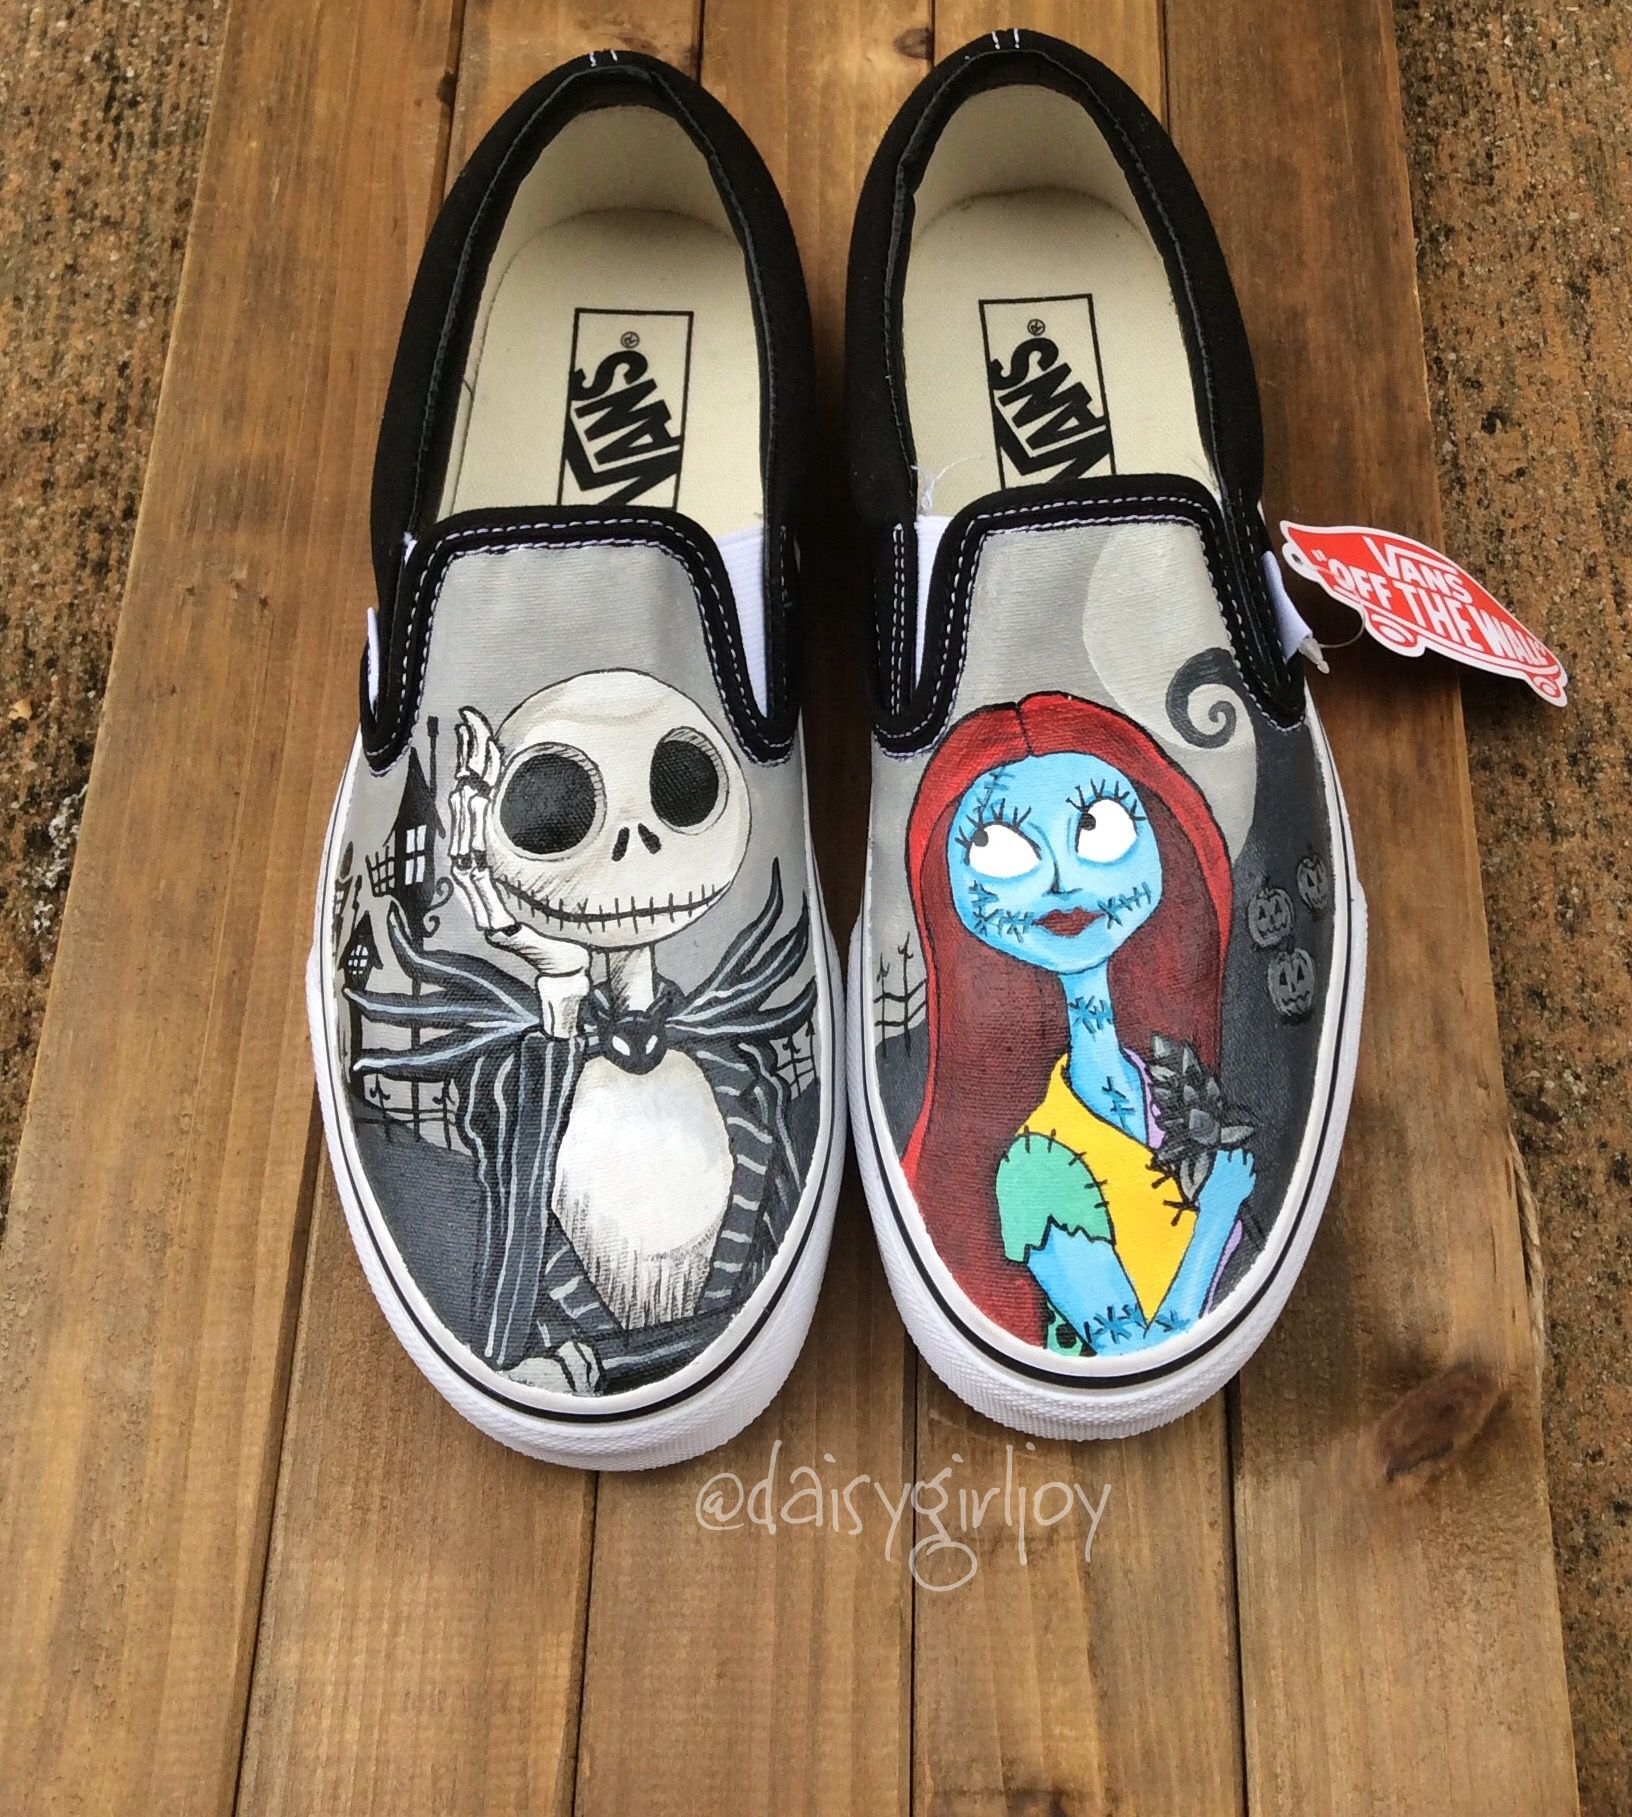 a2f2d6f5 Hats · Nightmare before Christmas shoes disney @daisygirljoy Sharpie Shoes,  Christmas Shoes, Hand Painted Shoes